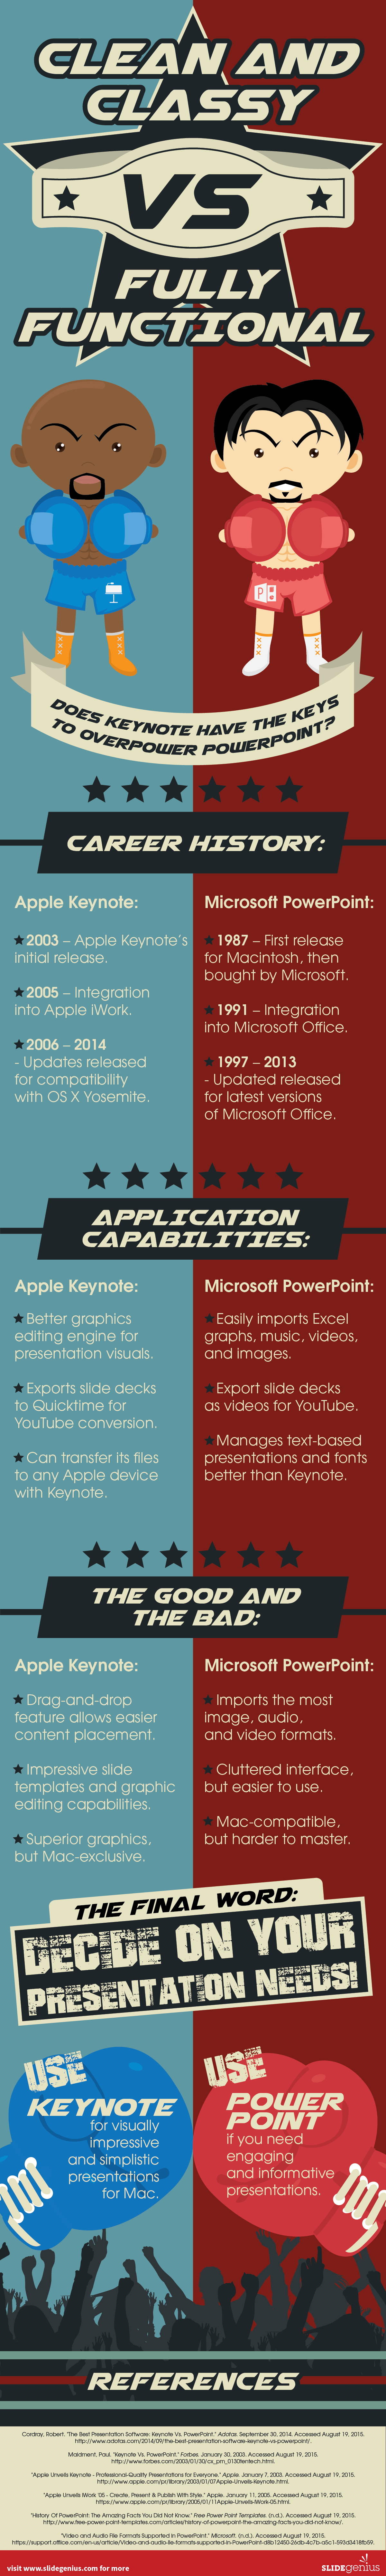 Does Keynote Have the Keys to Overpower PowerPoint? #infographic